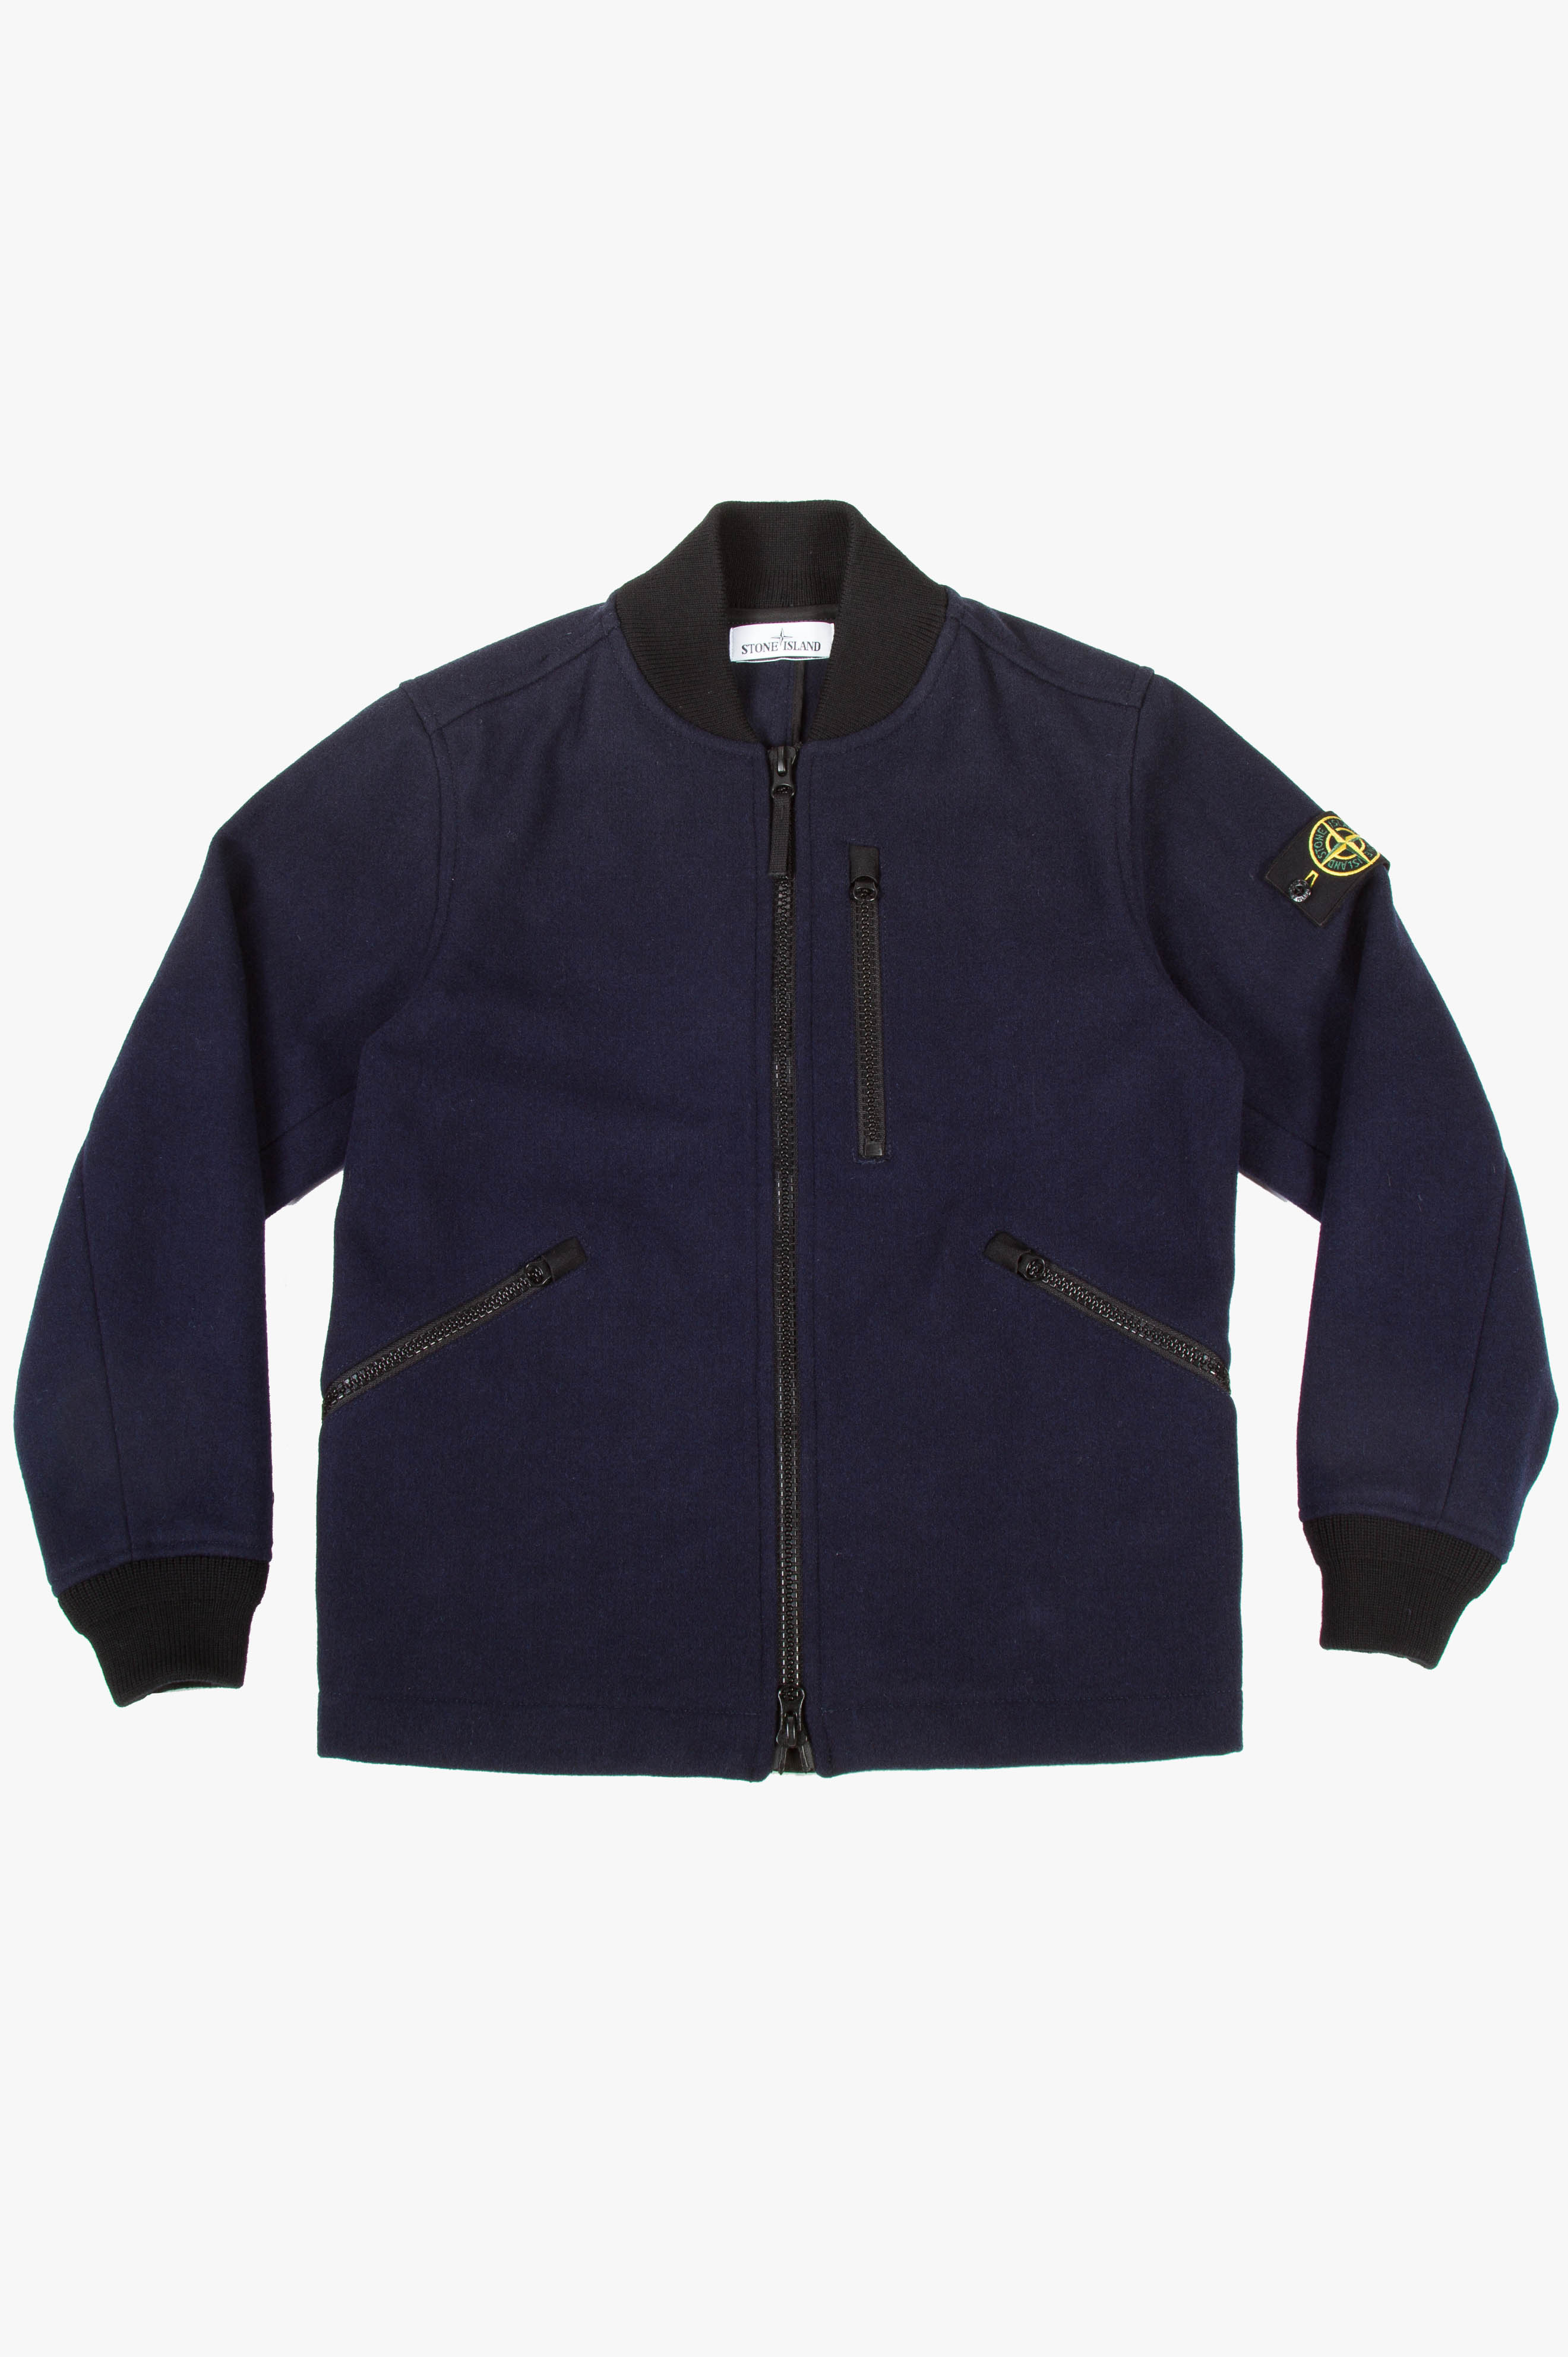 Panno Speciale Bomber Jacket Navy